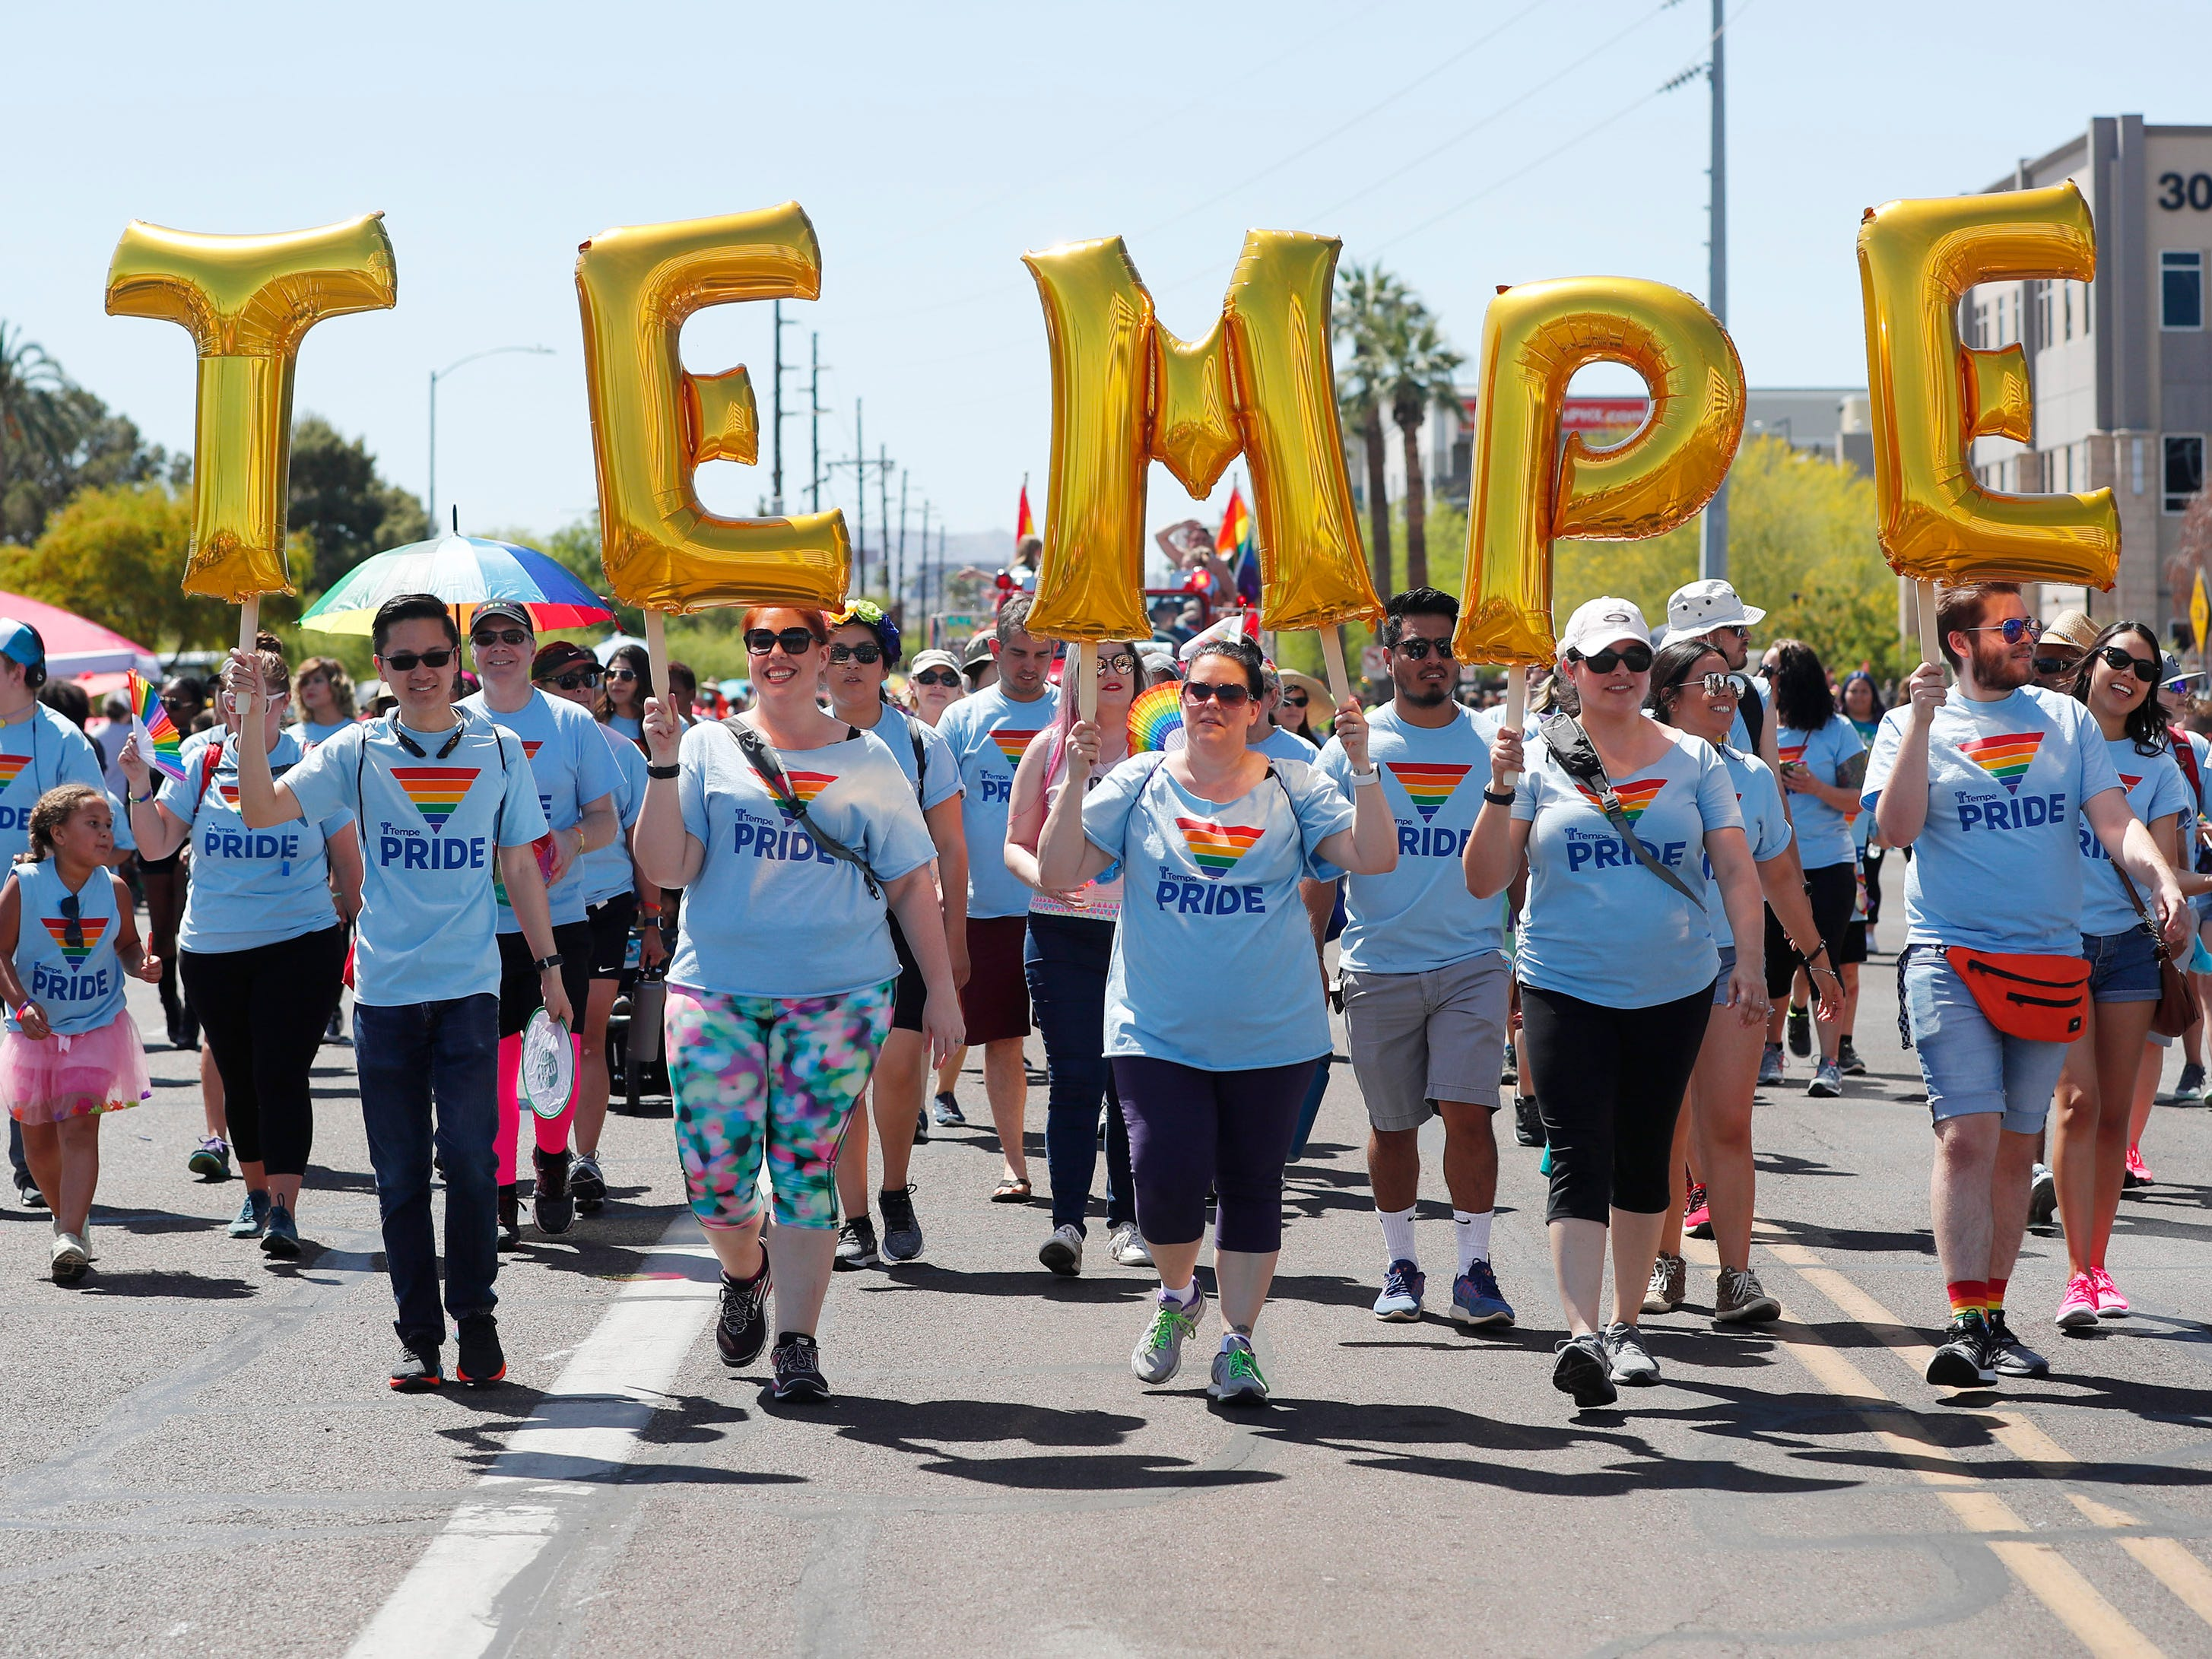 Participants with Tempe march during the Phoenix Pride Parade on April 7, 2019.